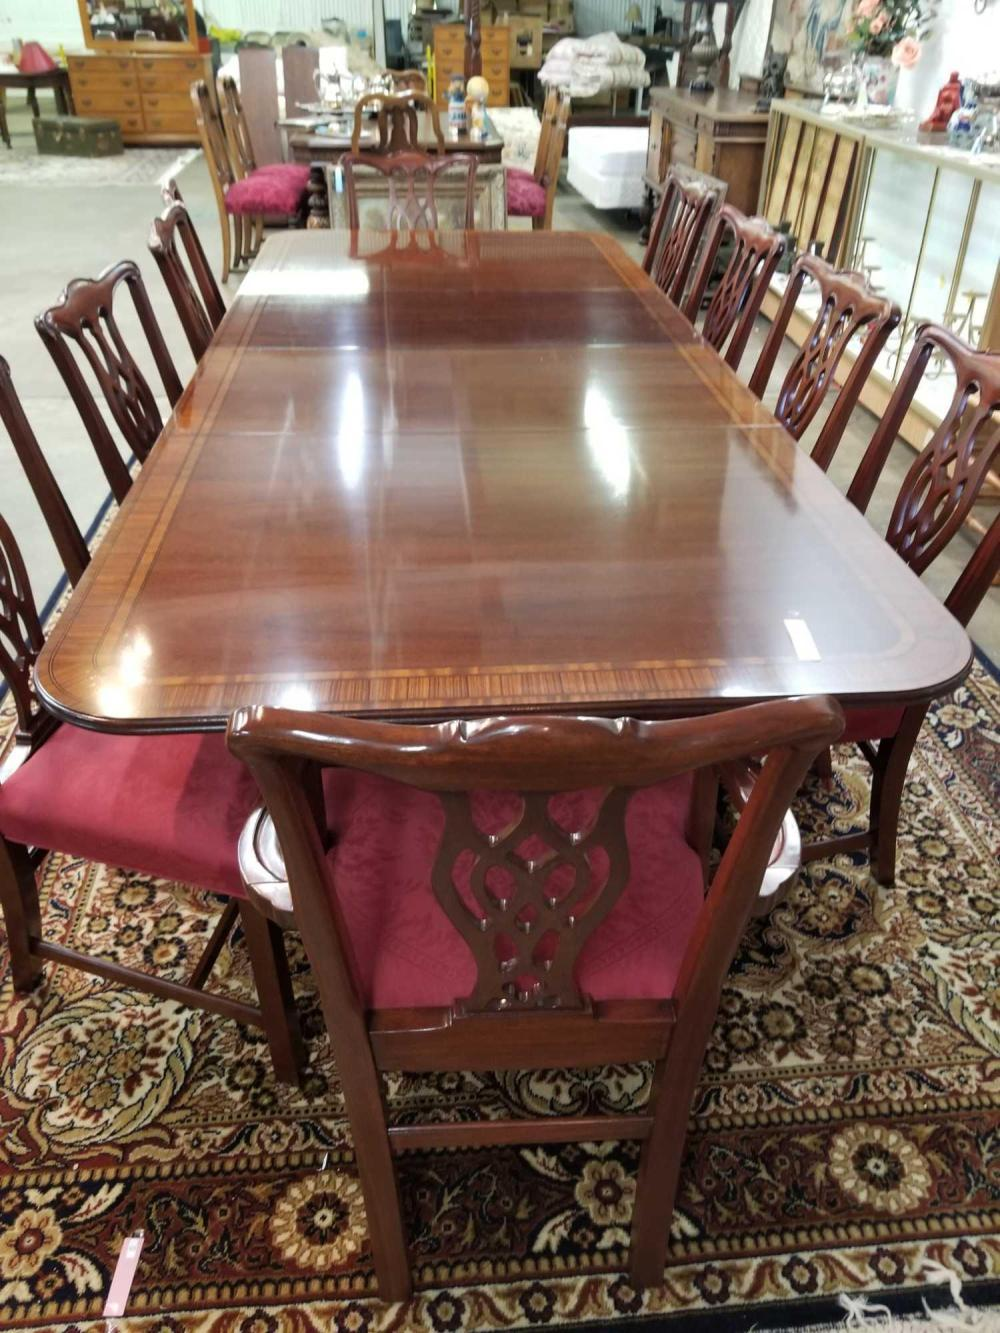 HICKORY CHAIR CO. CHIPPENDALE MAHOGANY DINING TABLE & 10 CHAIRS